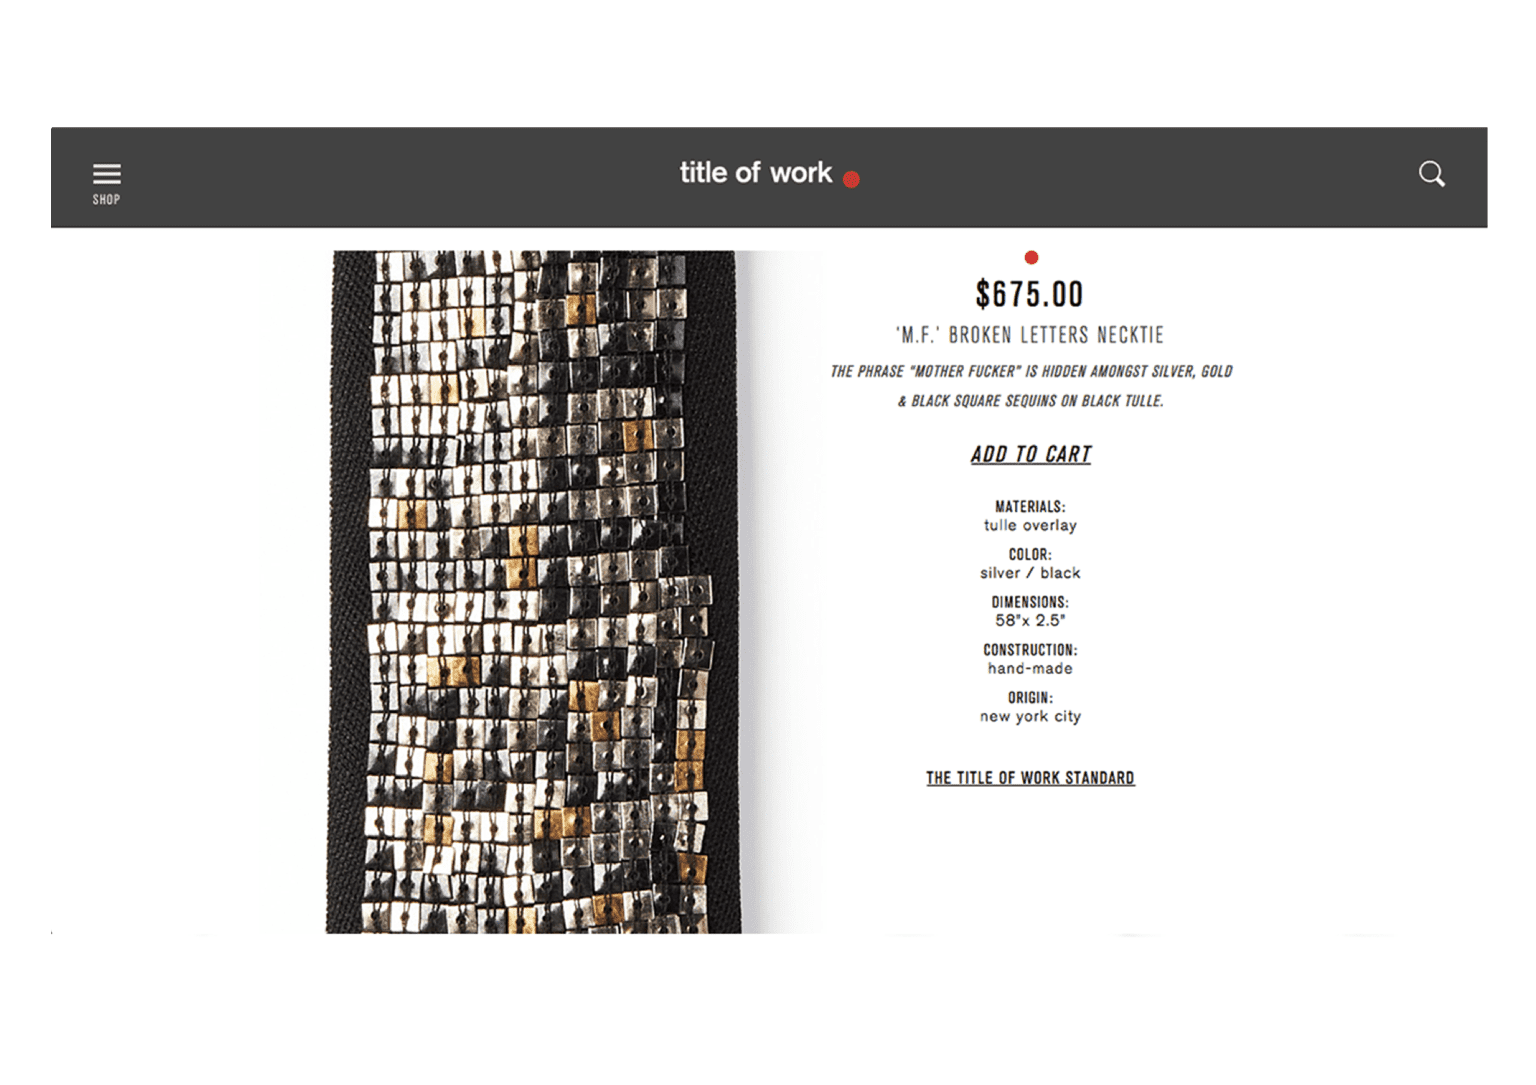 Title of Work